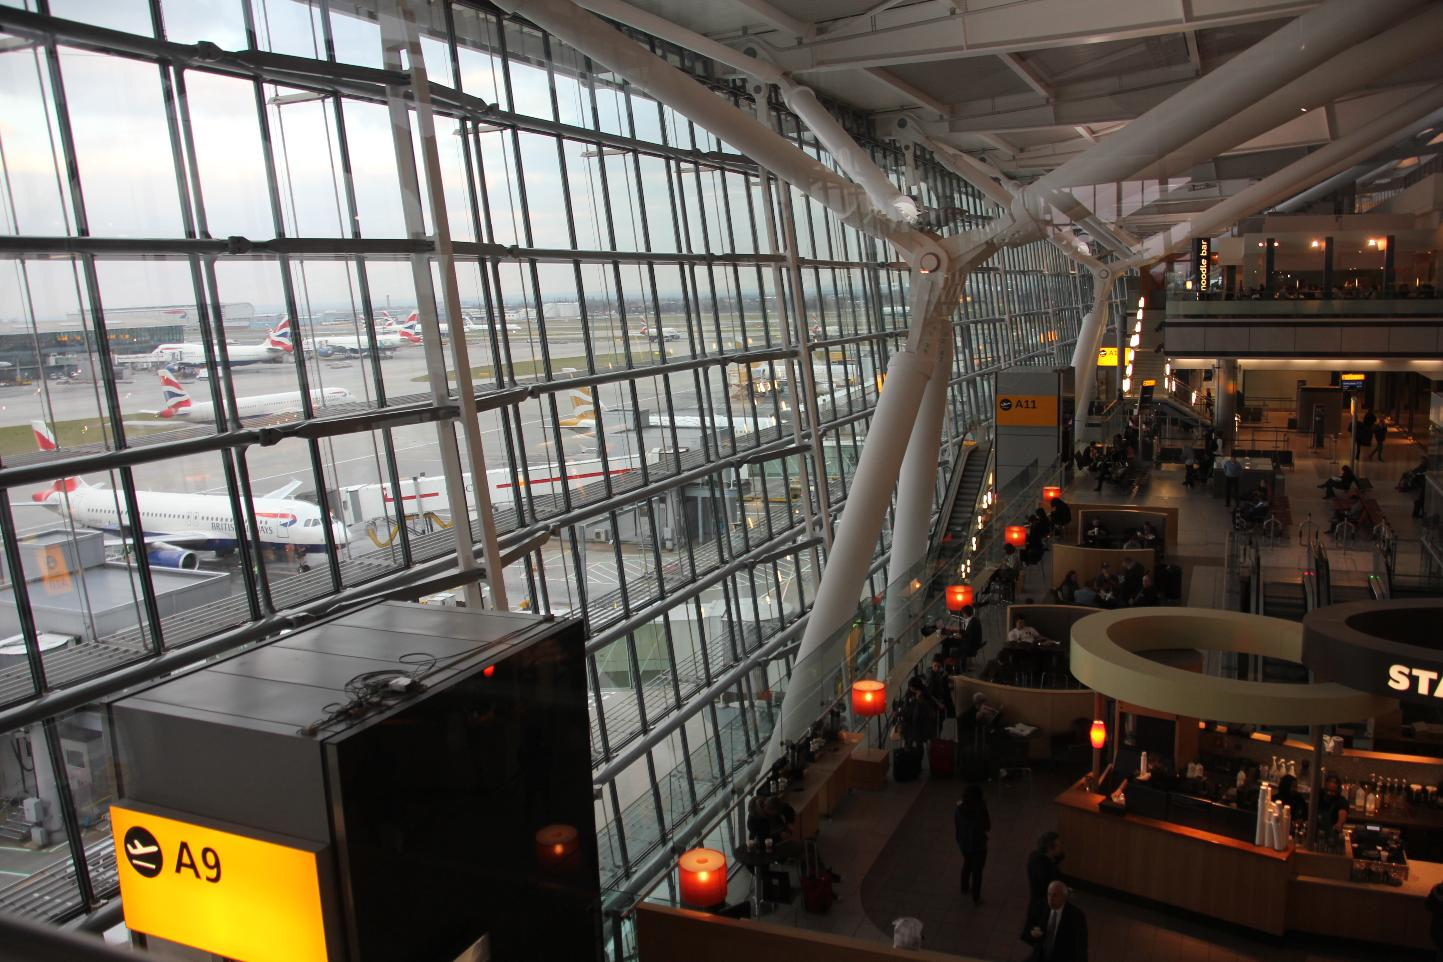 Heathrow Terminal 5 - to be destroyed or downgraded?